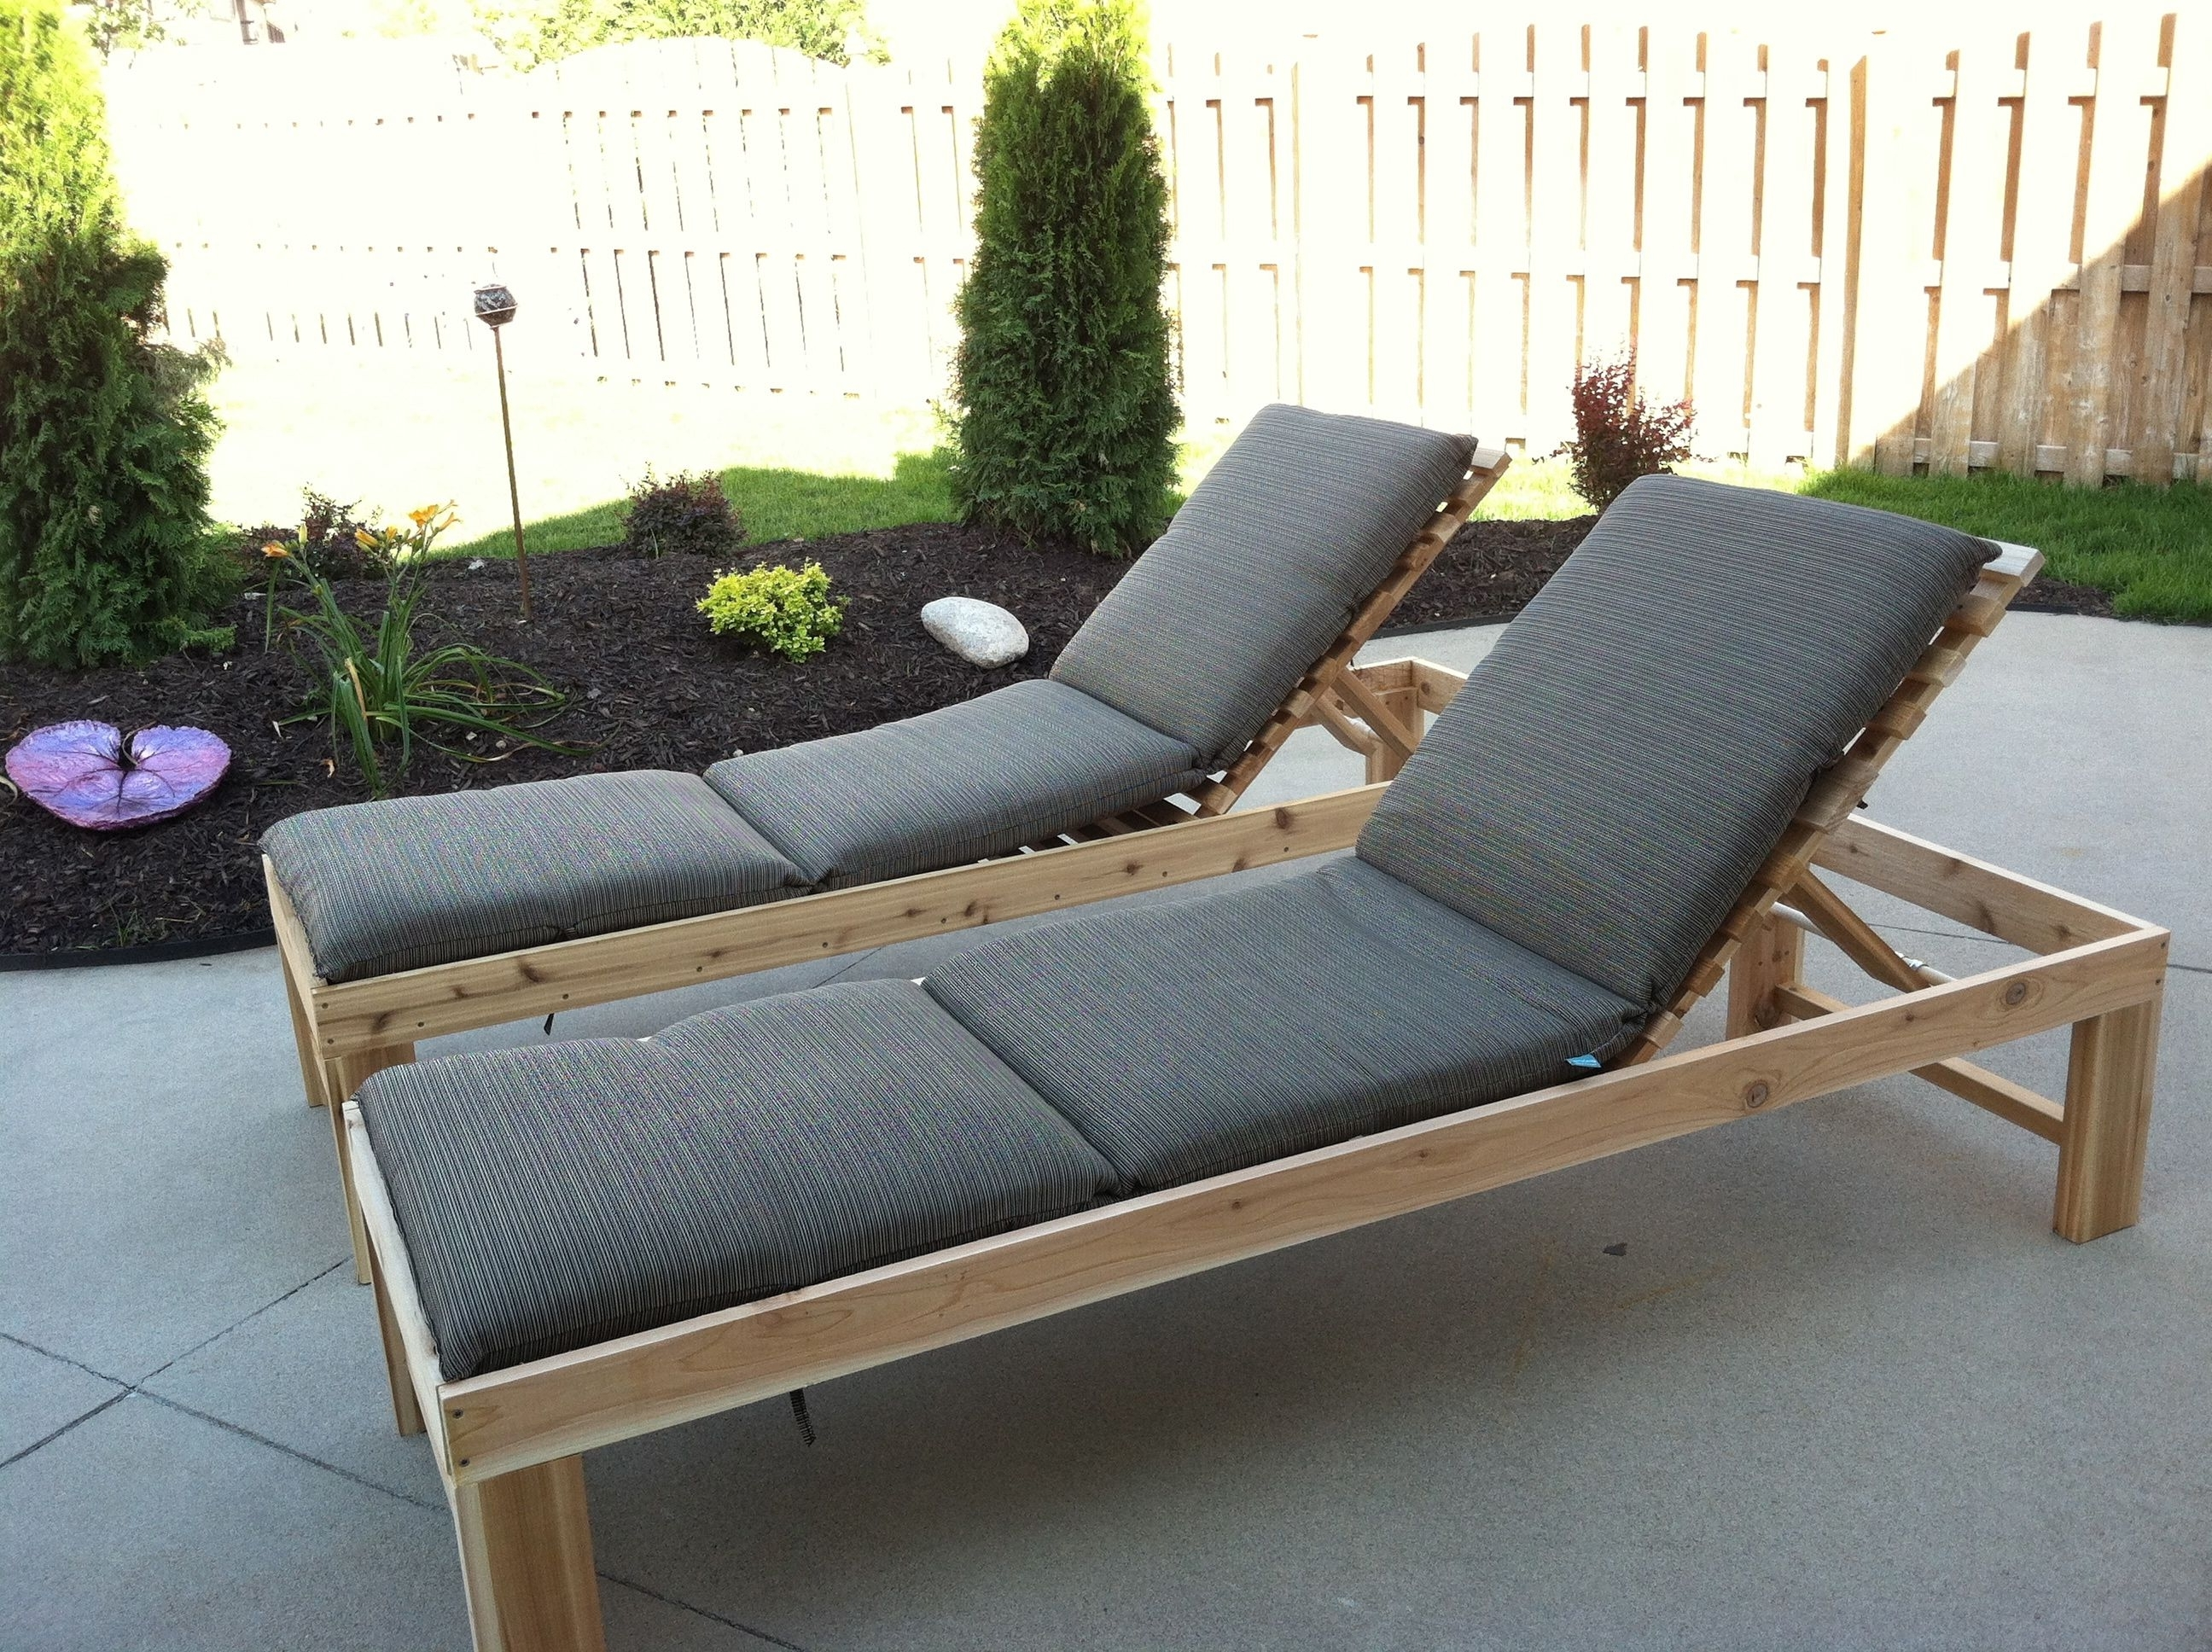 Outdoor Chaise Lounge With Ergonomic Seating Settings – Traba Homes Inside Most Up To Date Comfortable Outdoor Chaise Lounge Chairs (View 6 of 15)